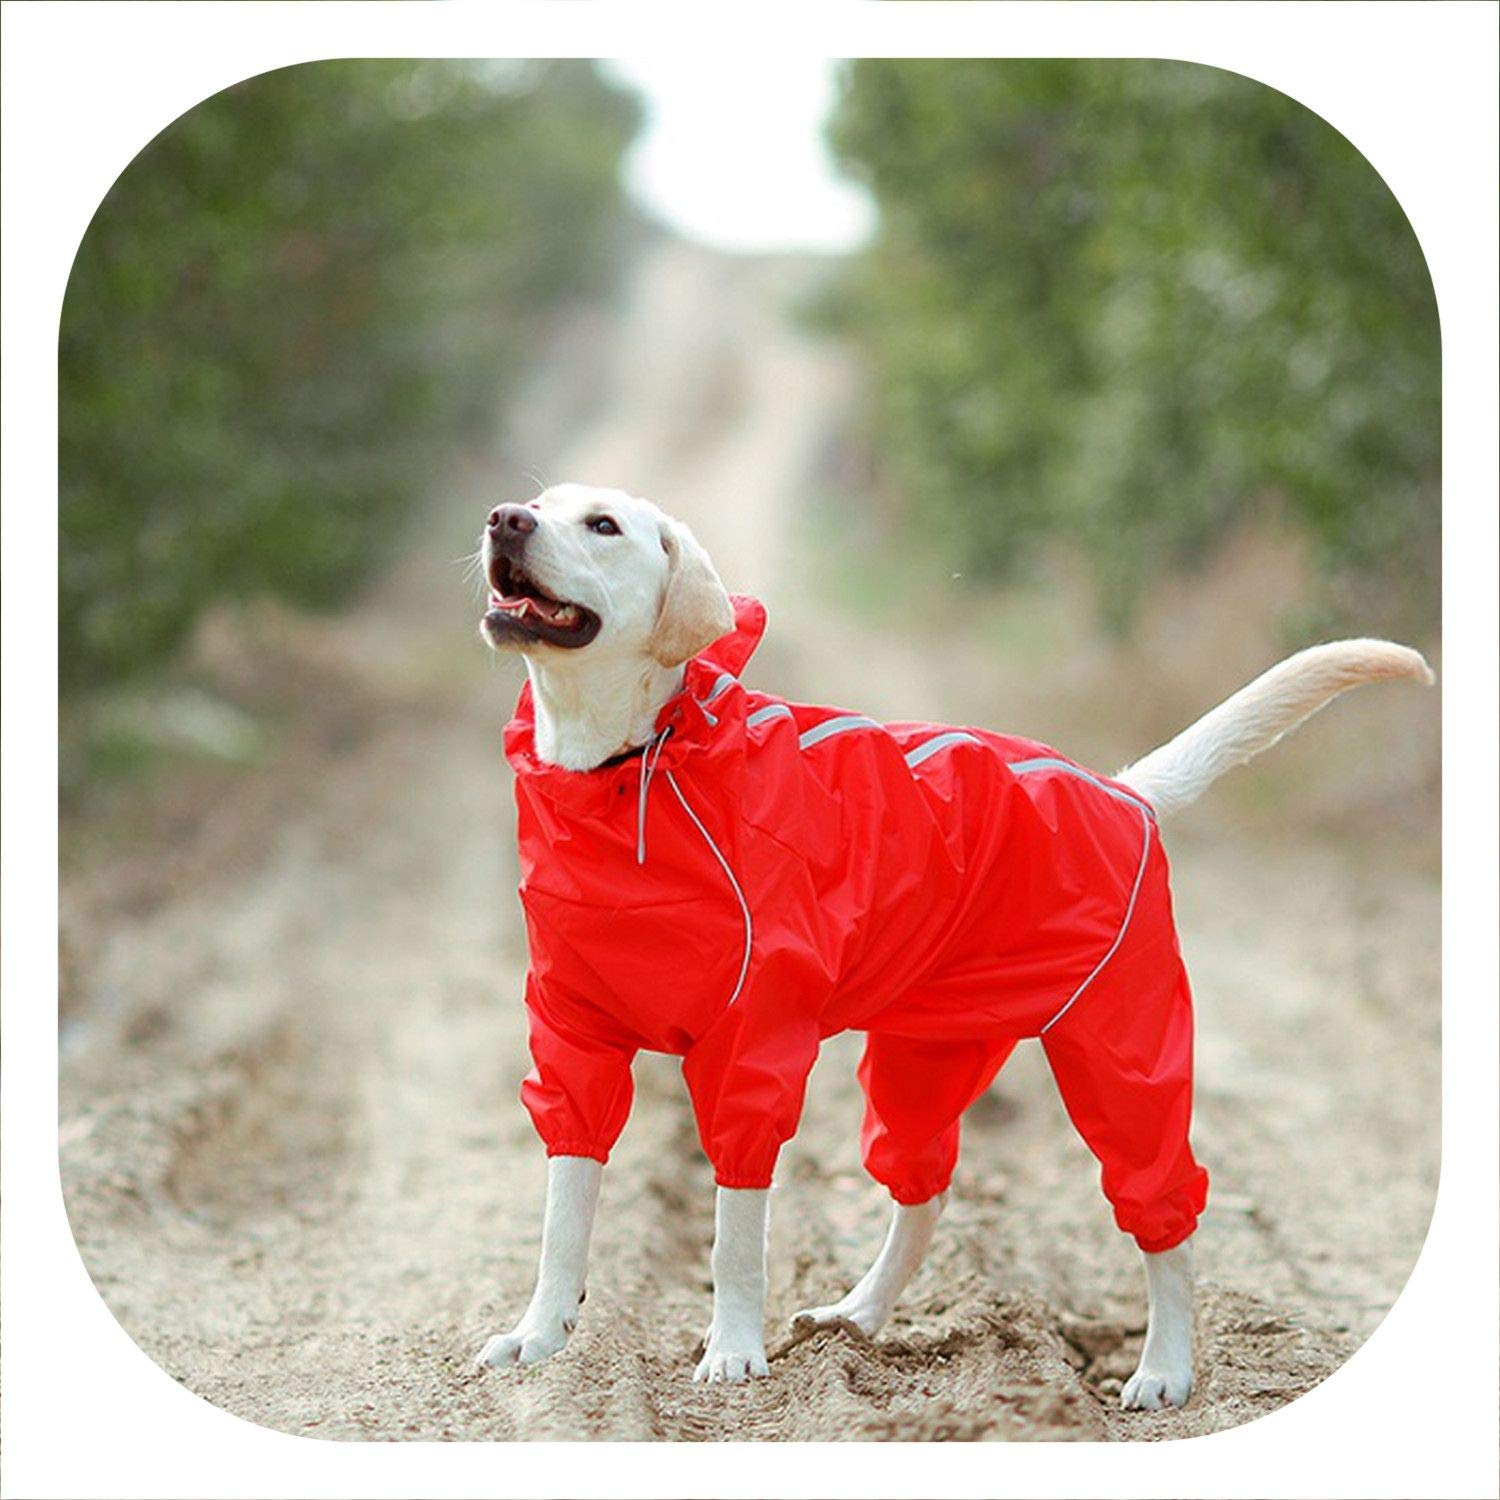 Pet Dog Raincoat Reflective Waterproof Clothes High Neck Hooded Jumpsuit for Small Big Dogs Rain Cloak Golden Retriever Labrador,Red,16